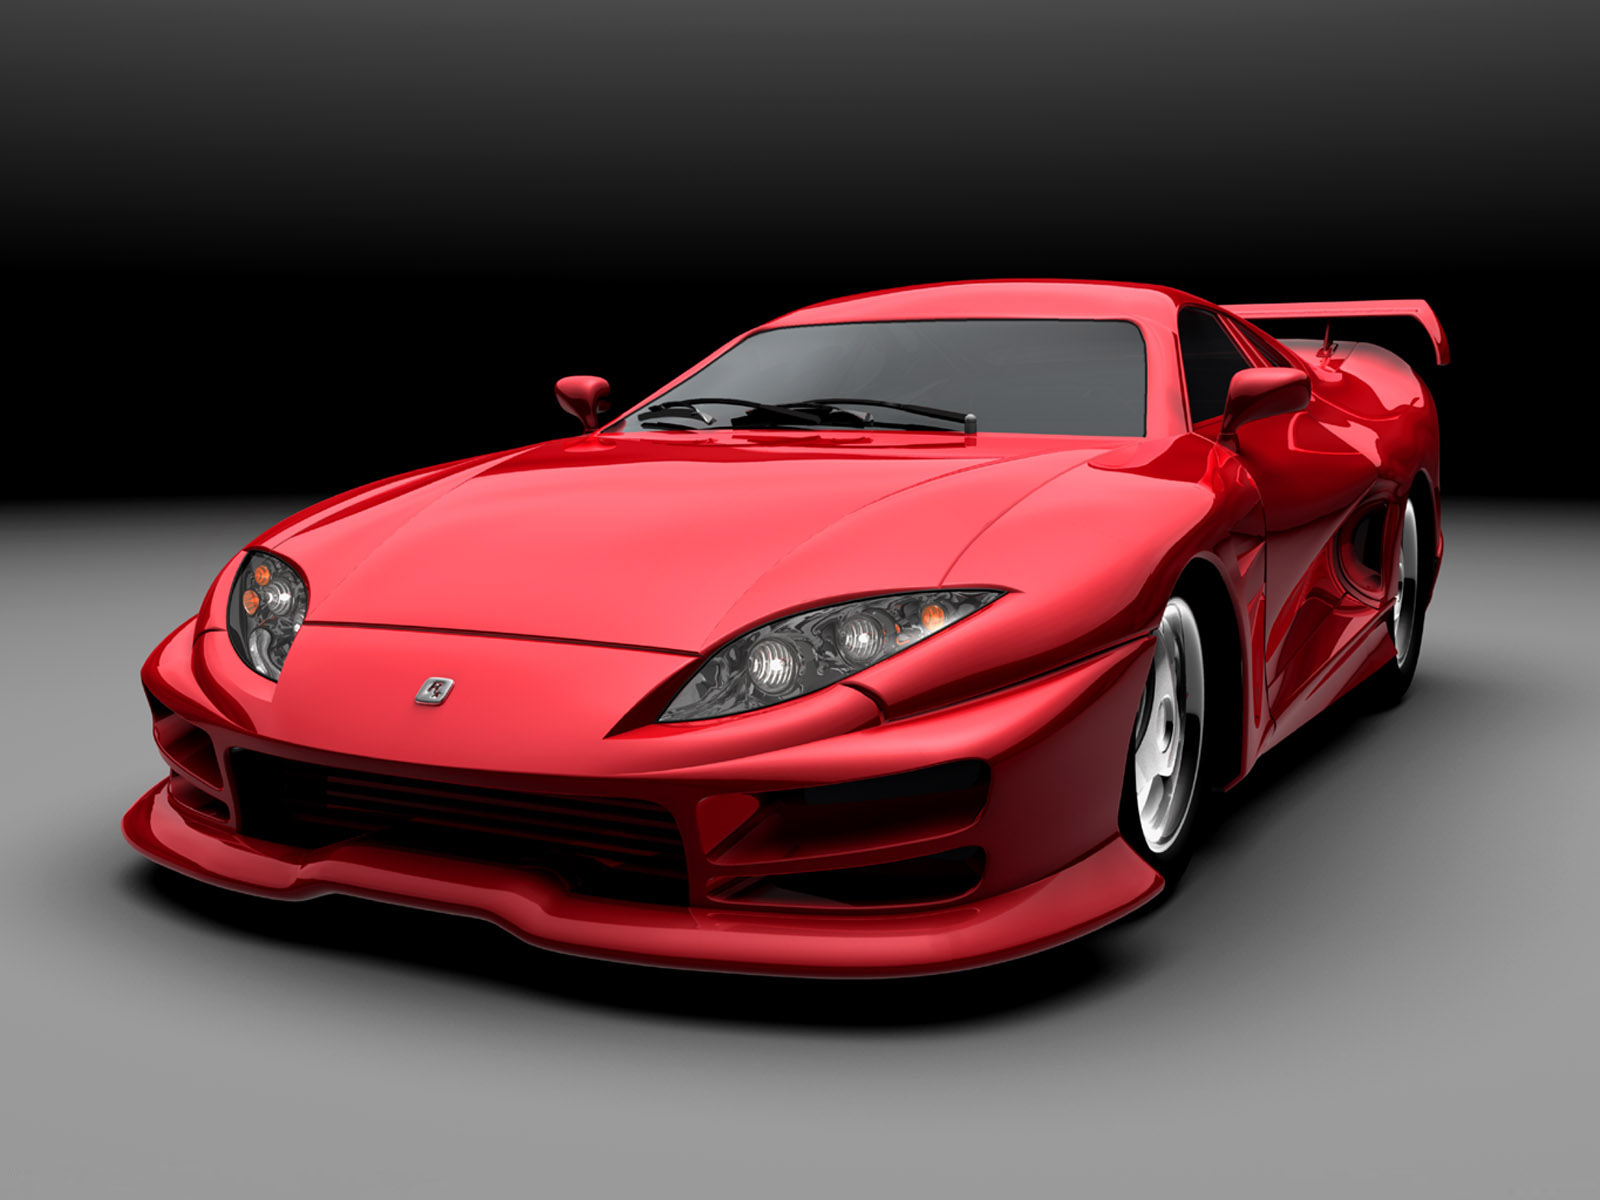 fast sports cars wallpapers amazing wallpapers. Black Bedroom Furniture Sets. Home Design Ideas